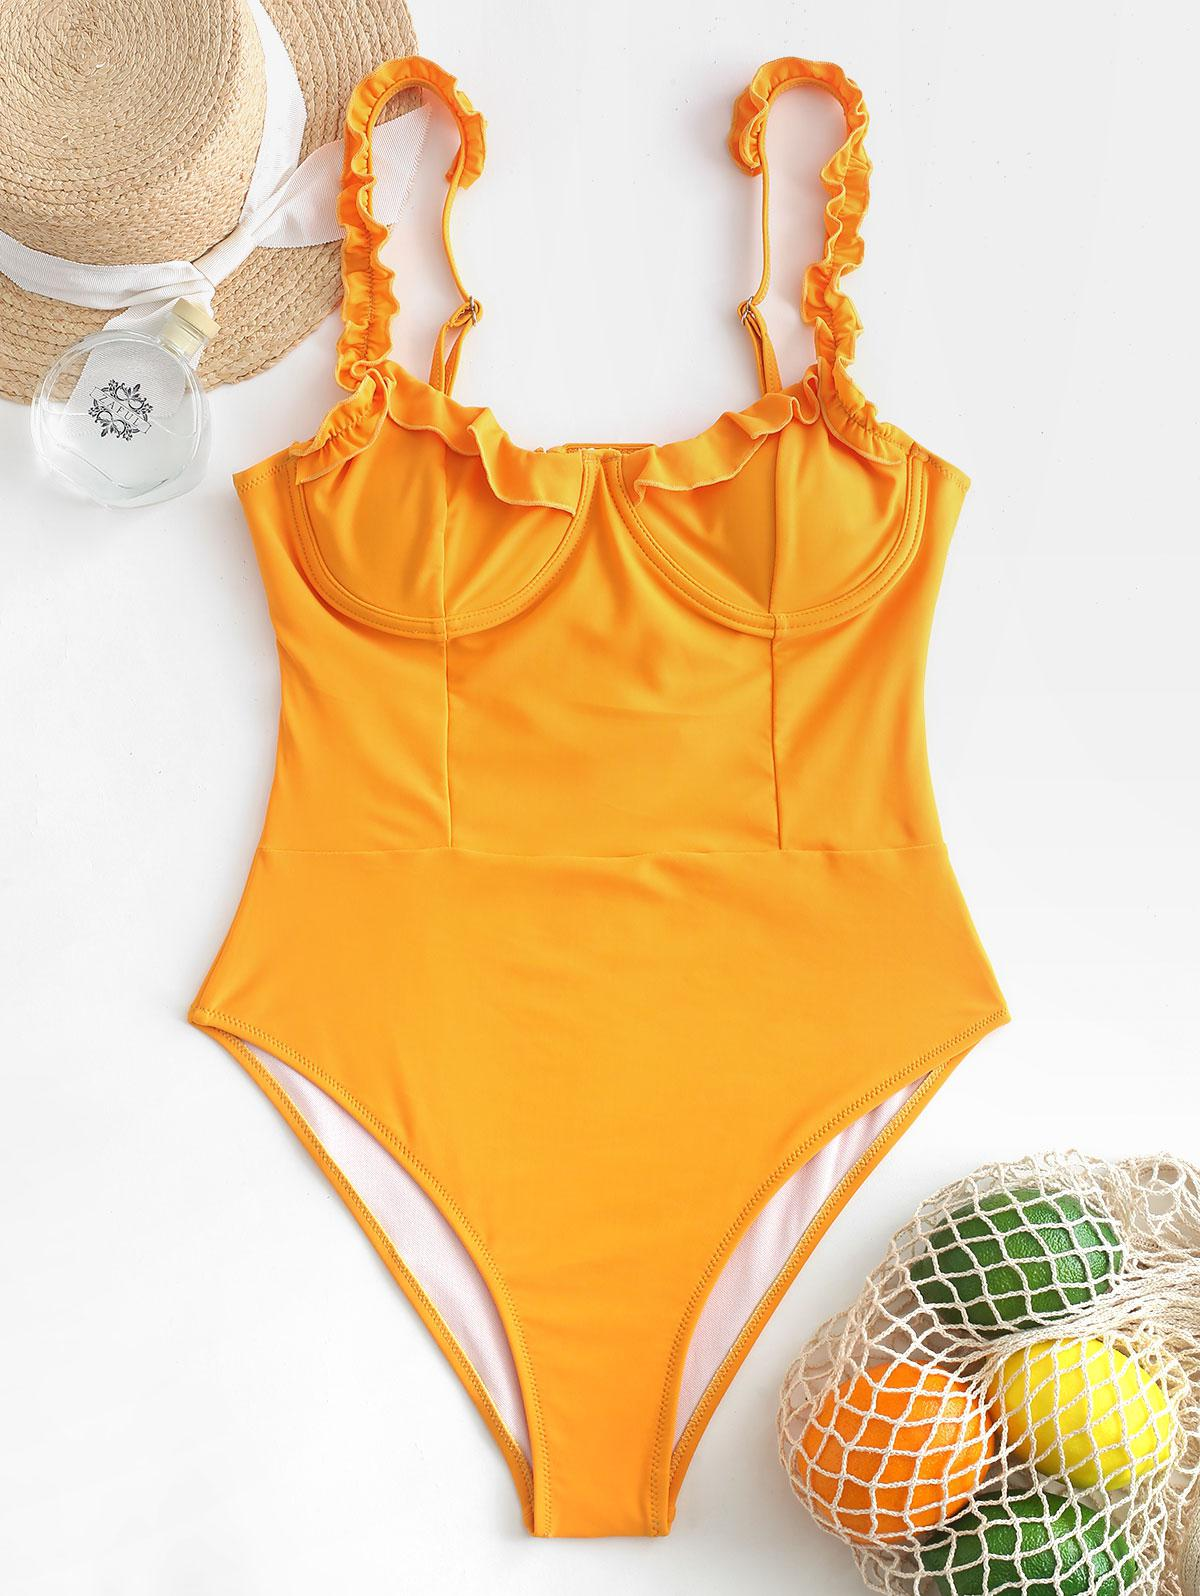 ZAFUL Lace-up Frilled Underwire One-piece Swimsuit, Saffron